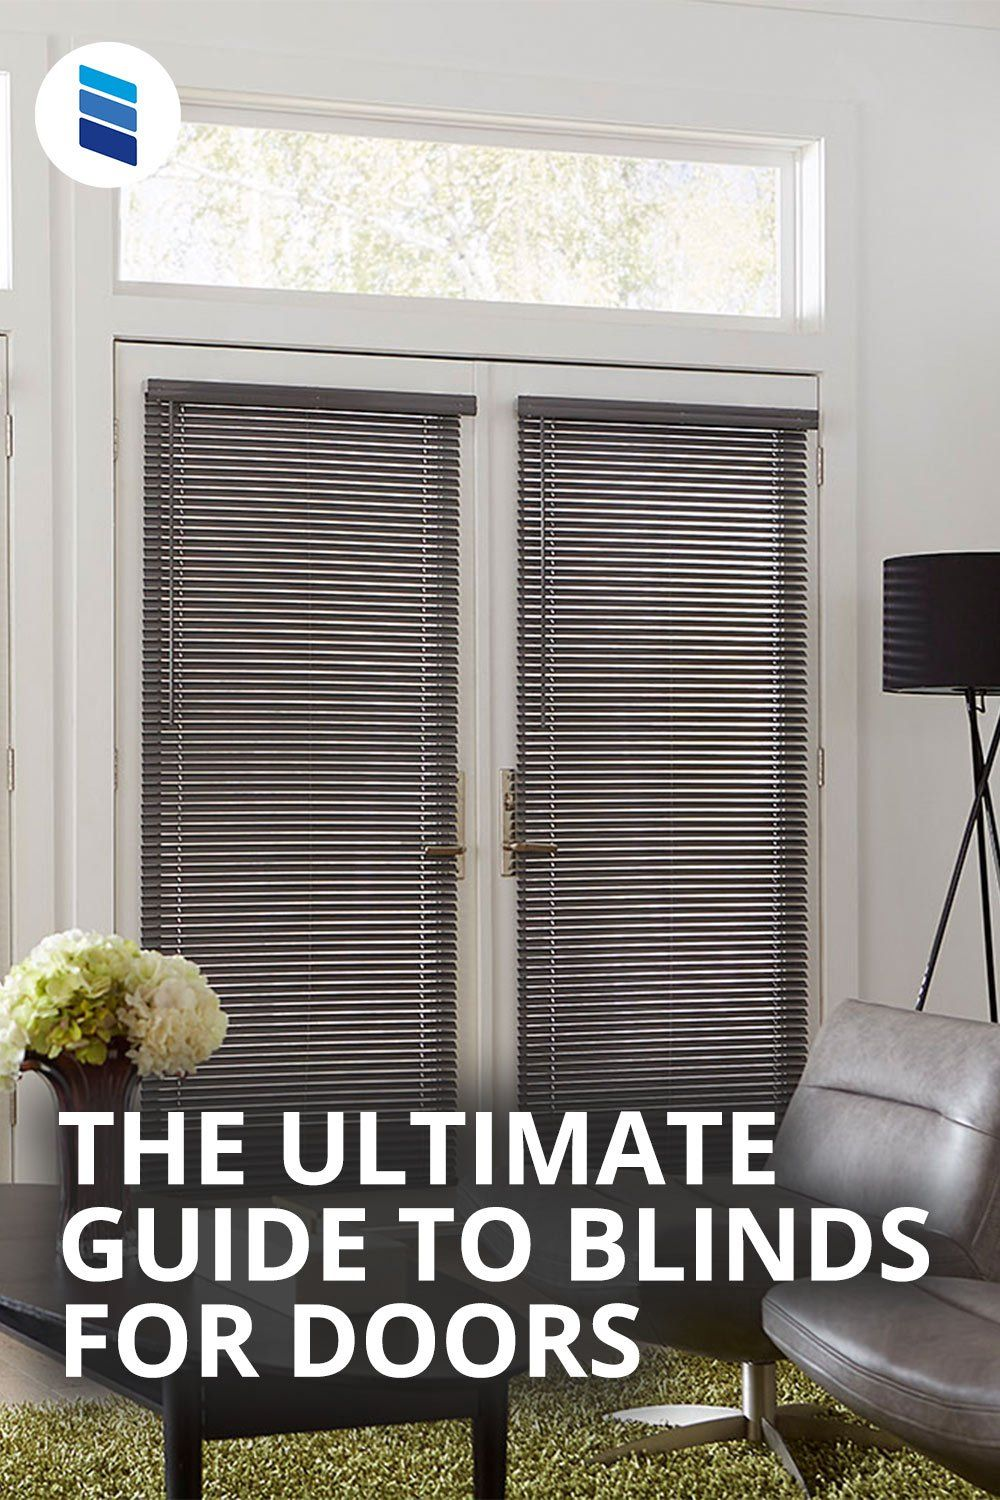 10 Things You Must Know When Buying Blinds For Doors Blinds Com In 2020 Shades For French Doors Arched Window Coverings Faux Wood Blinds